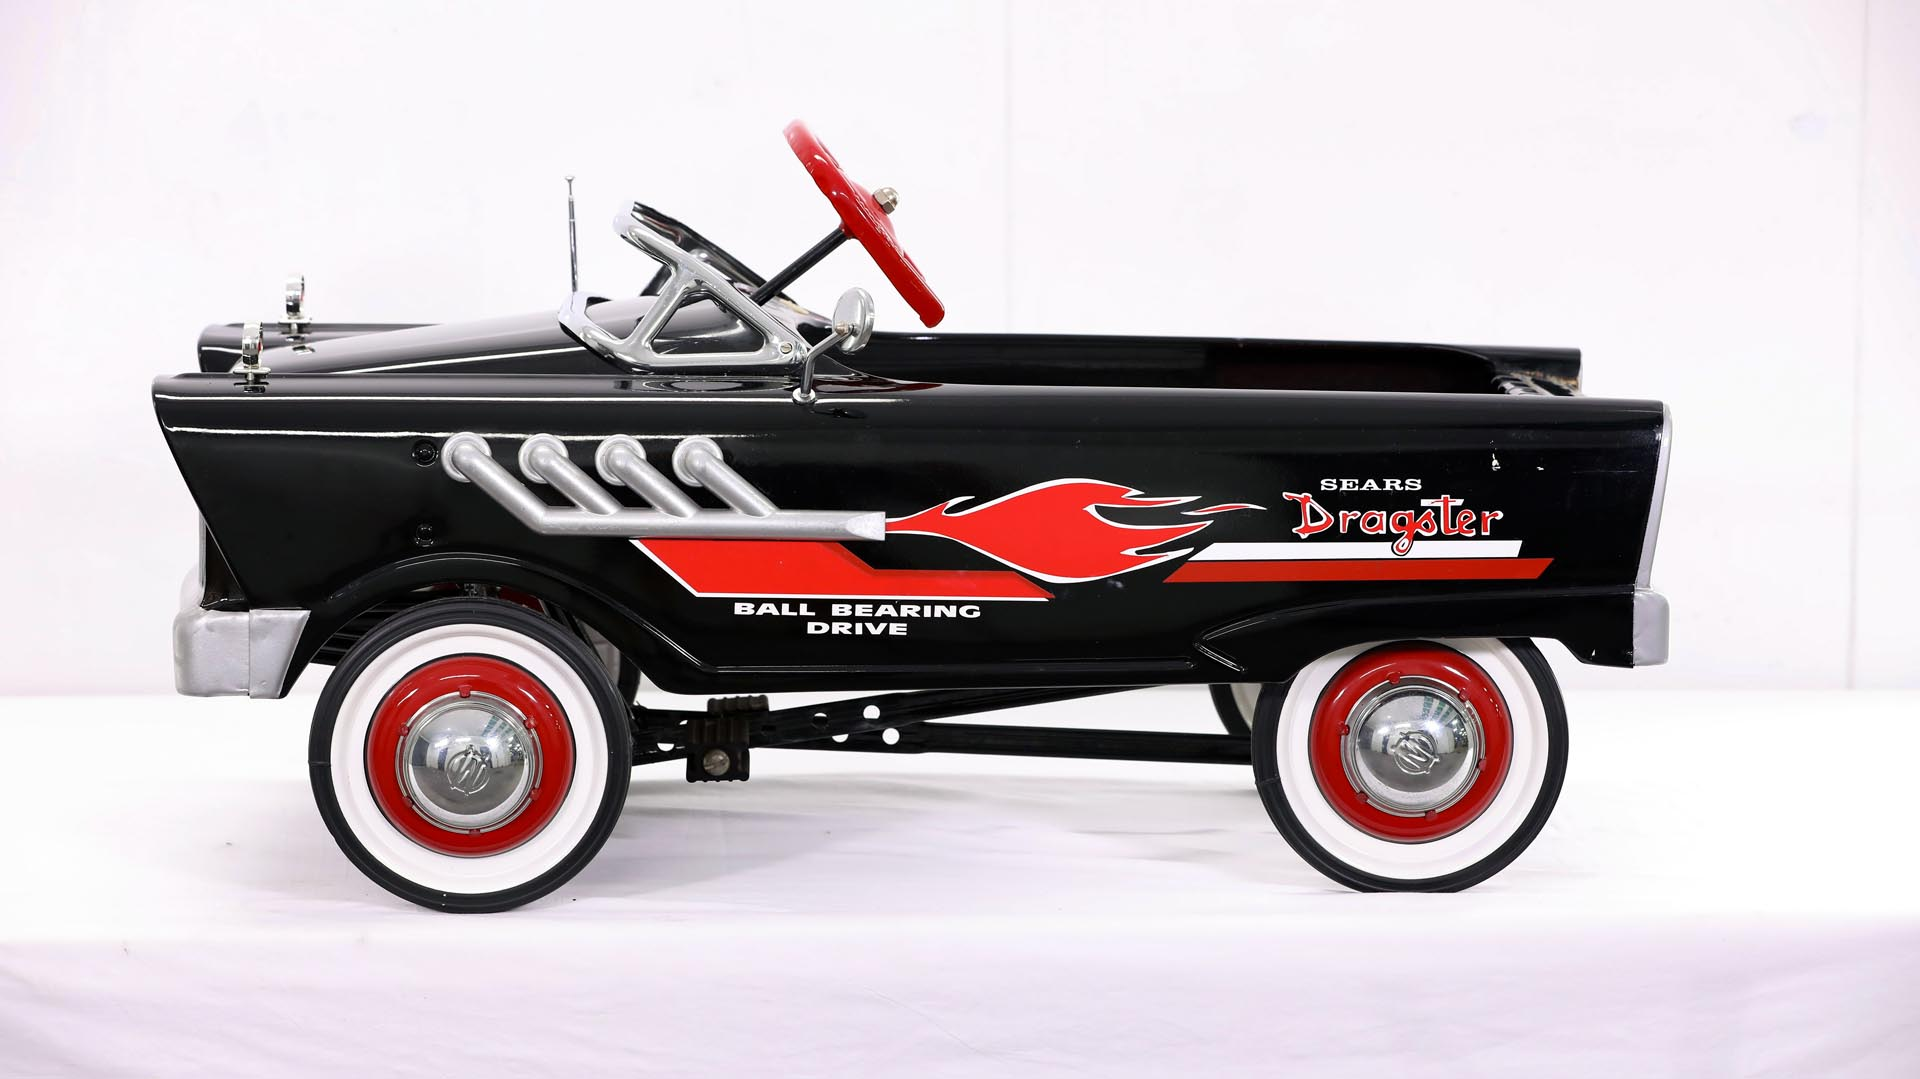 1960s Murray Sears Dragster Pedal Car